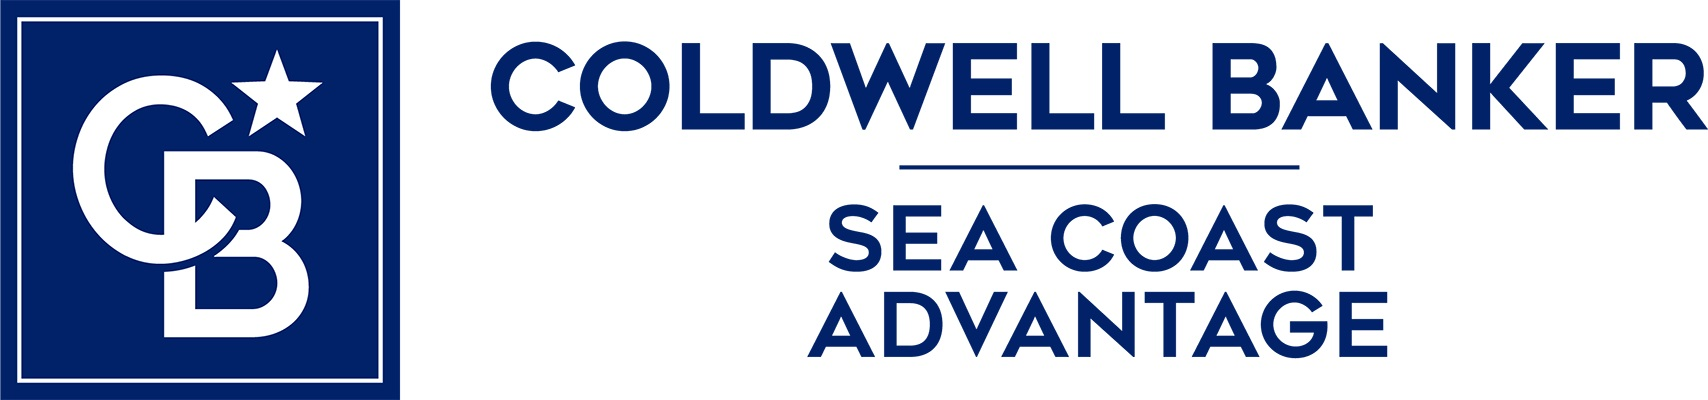 Jerry Wisdo - Coldwell Banker Sea Coast Advantage Realty